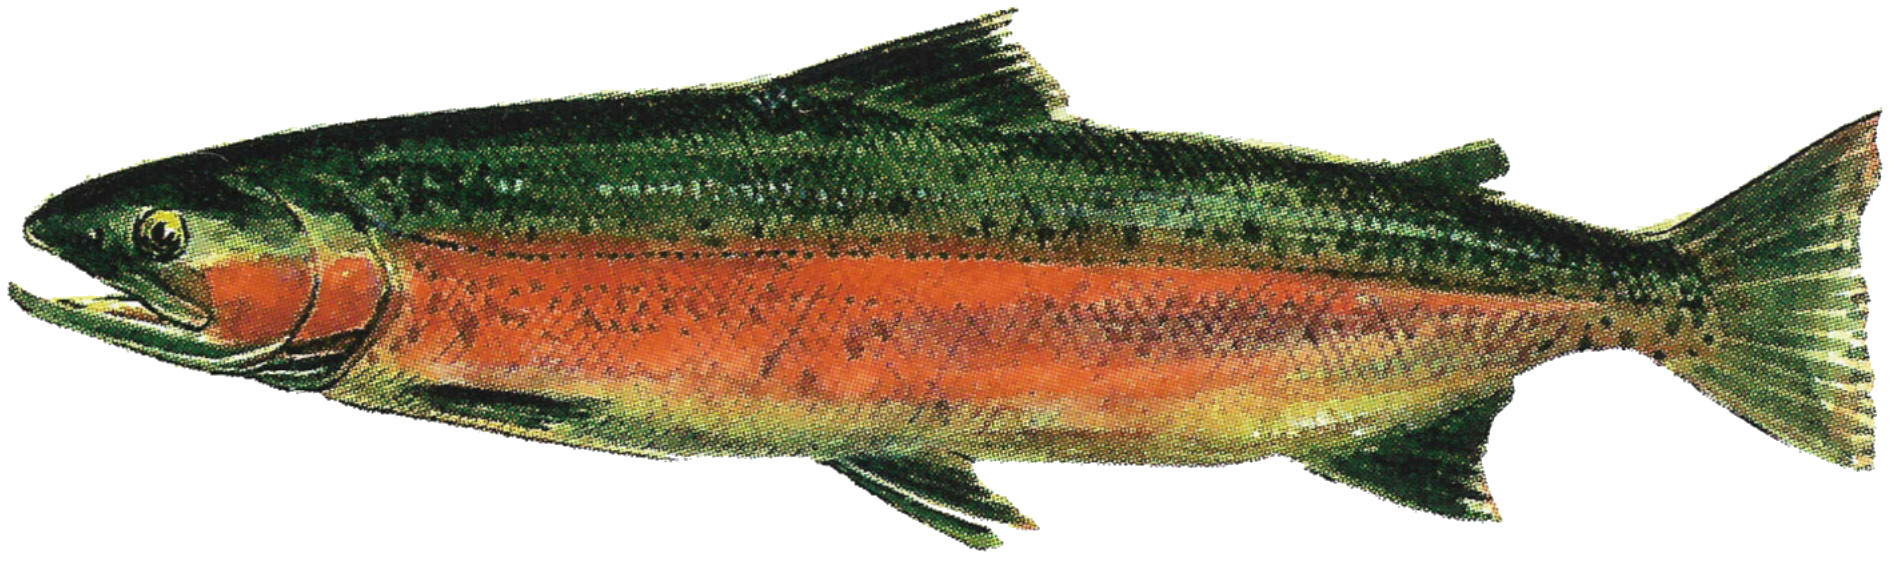 Types of freshwater lake fish for Freshwater fish facts